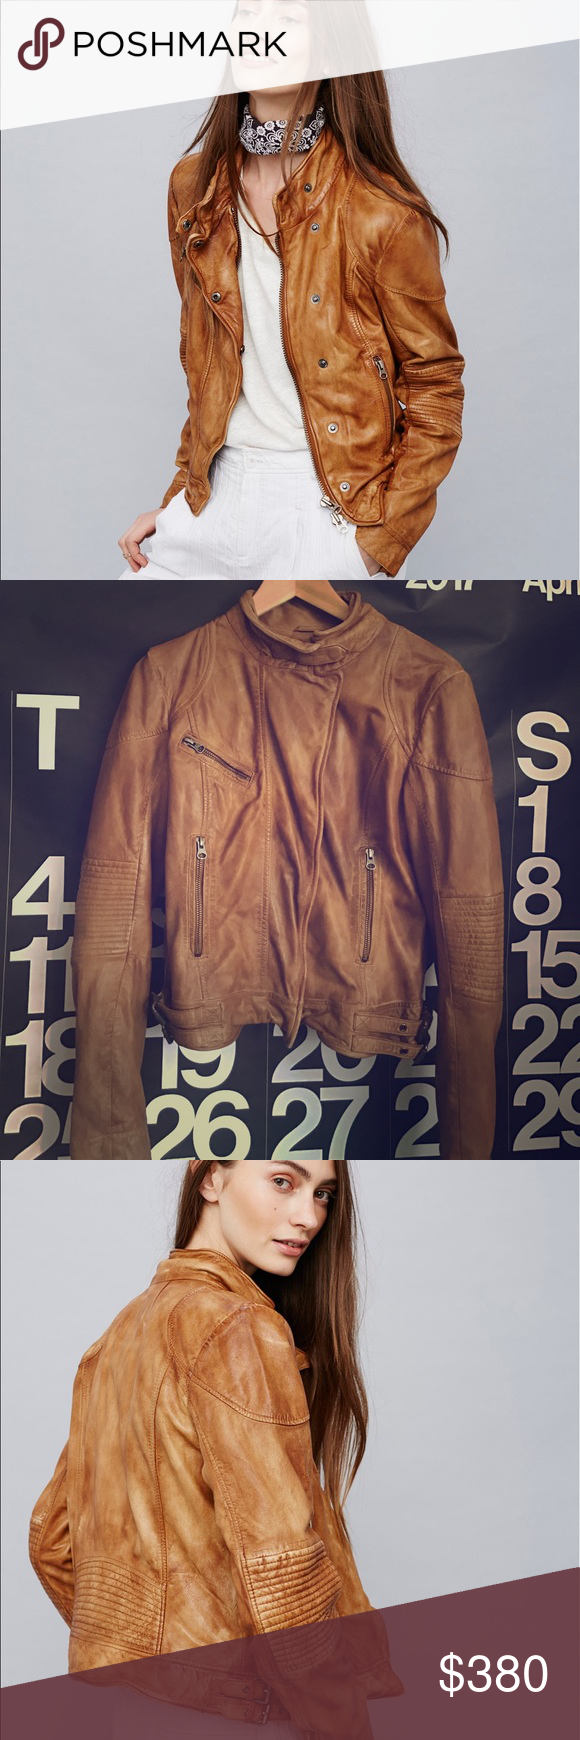 Fitted And Rugged Leather Jacket This Jacket Is In Great Condition Like New Color Redwood Style 39823190 Color Co Free People Jacket Workout Jacket Jackets